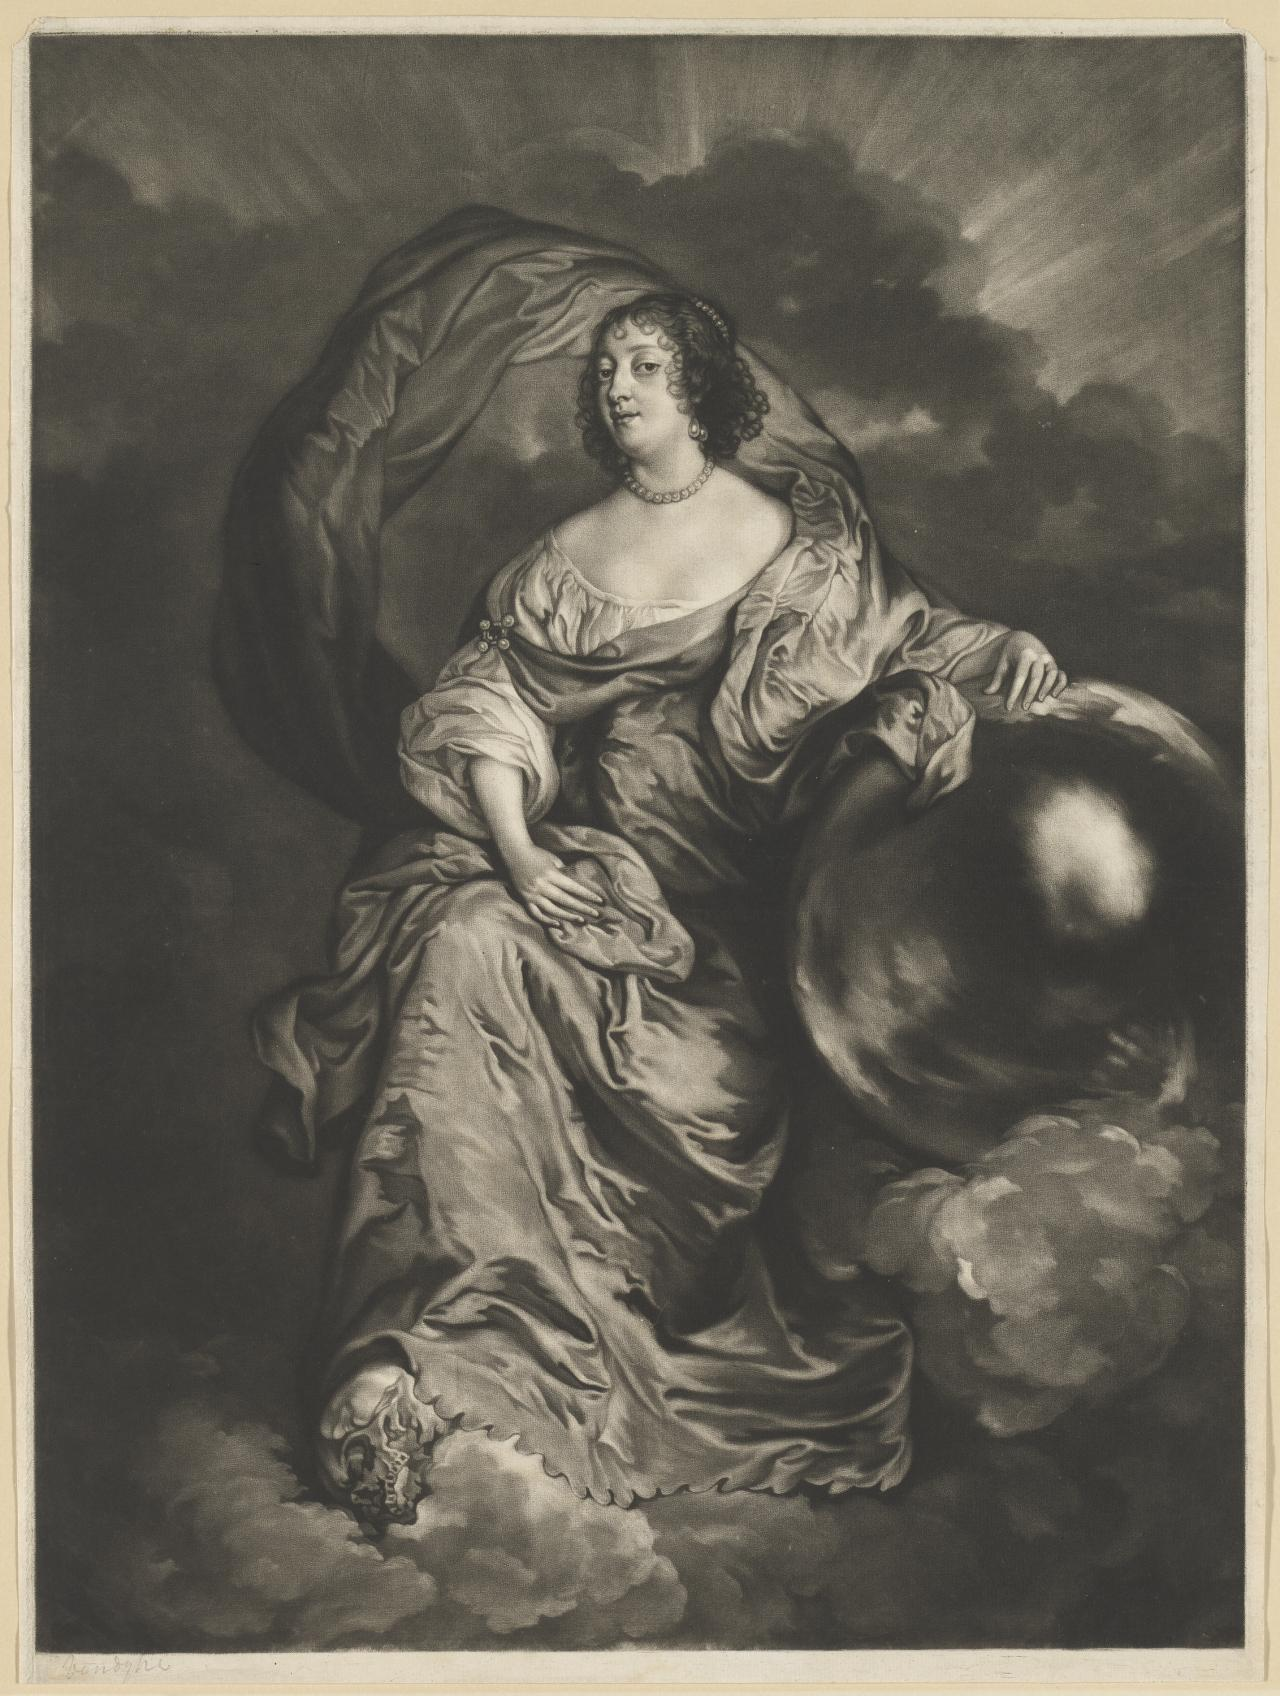 Rachel de Ruvigny, Countess of Southampton